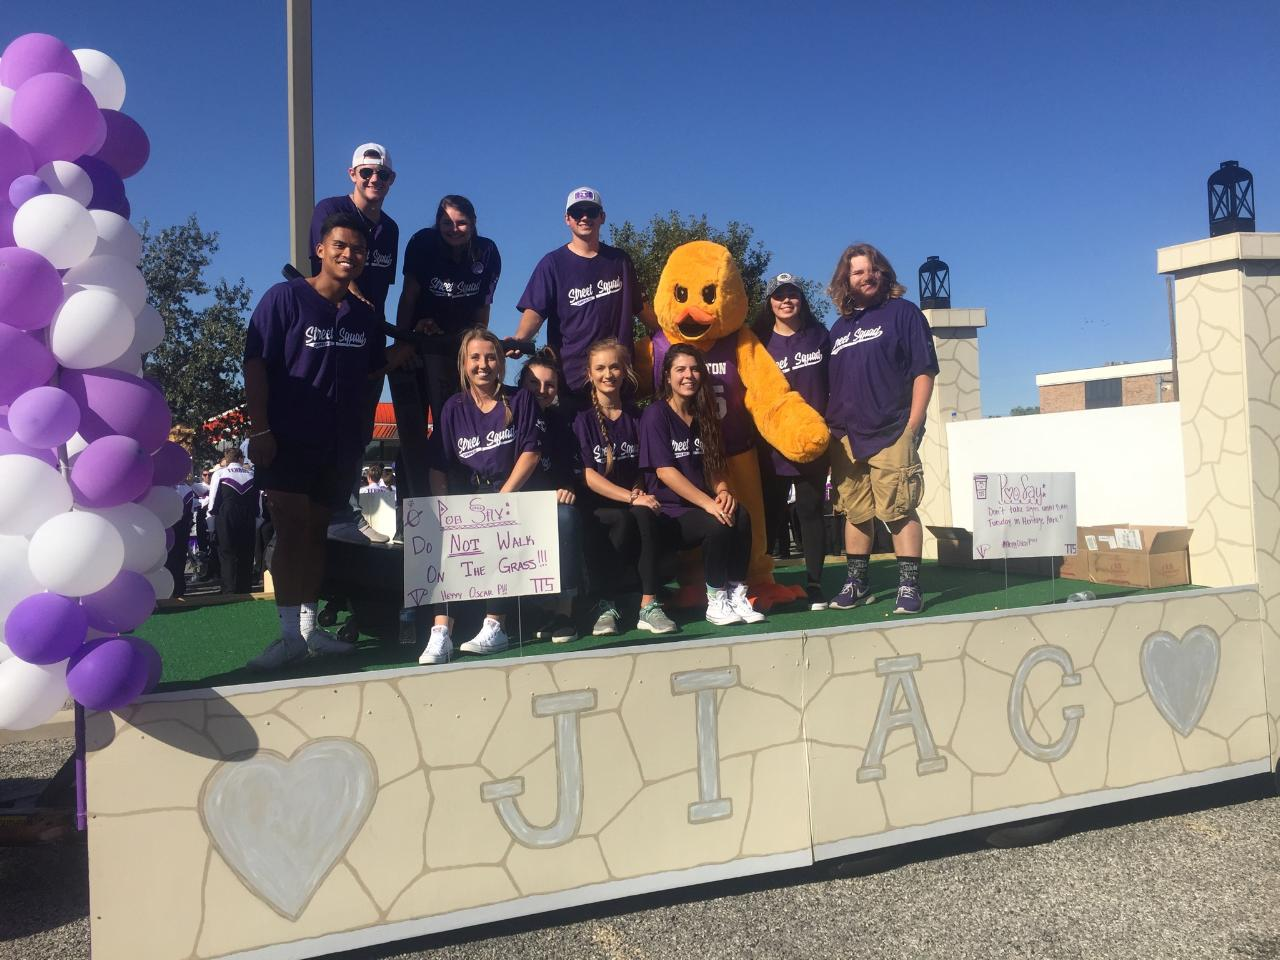 Oscar P debuted his new look during the Exercise is Medicine® On Campus Mascot Challenge video released last week (Oct. 13). Keeping with the theme, Oscar P rode the Campus Recreation float during the 2019 Homecoming parade.